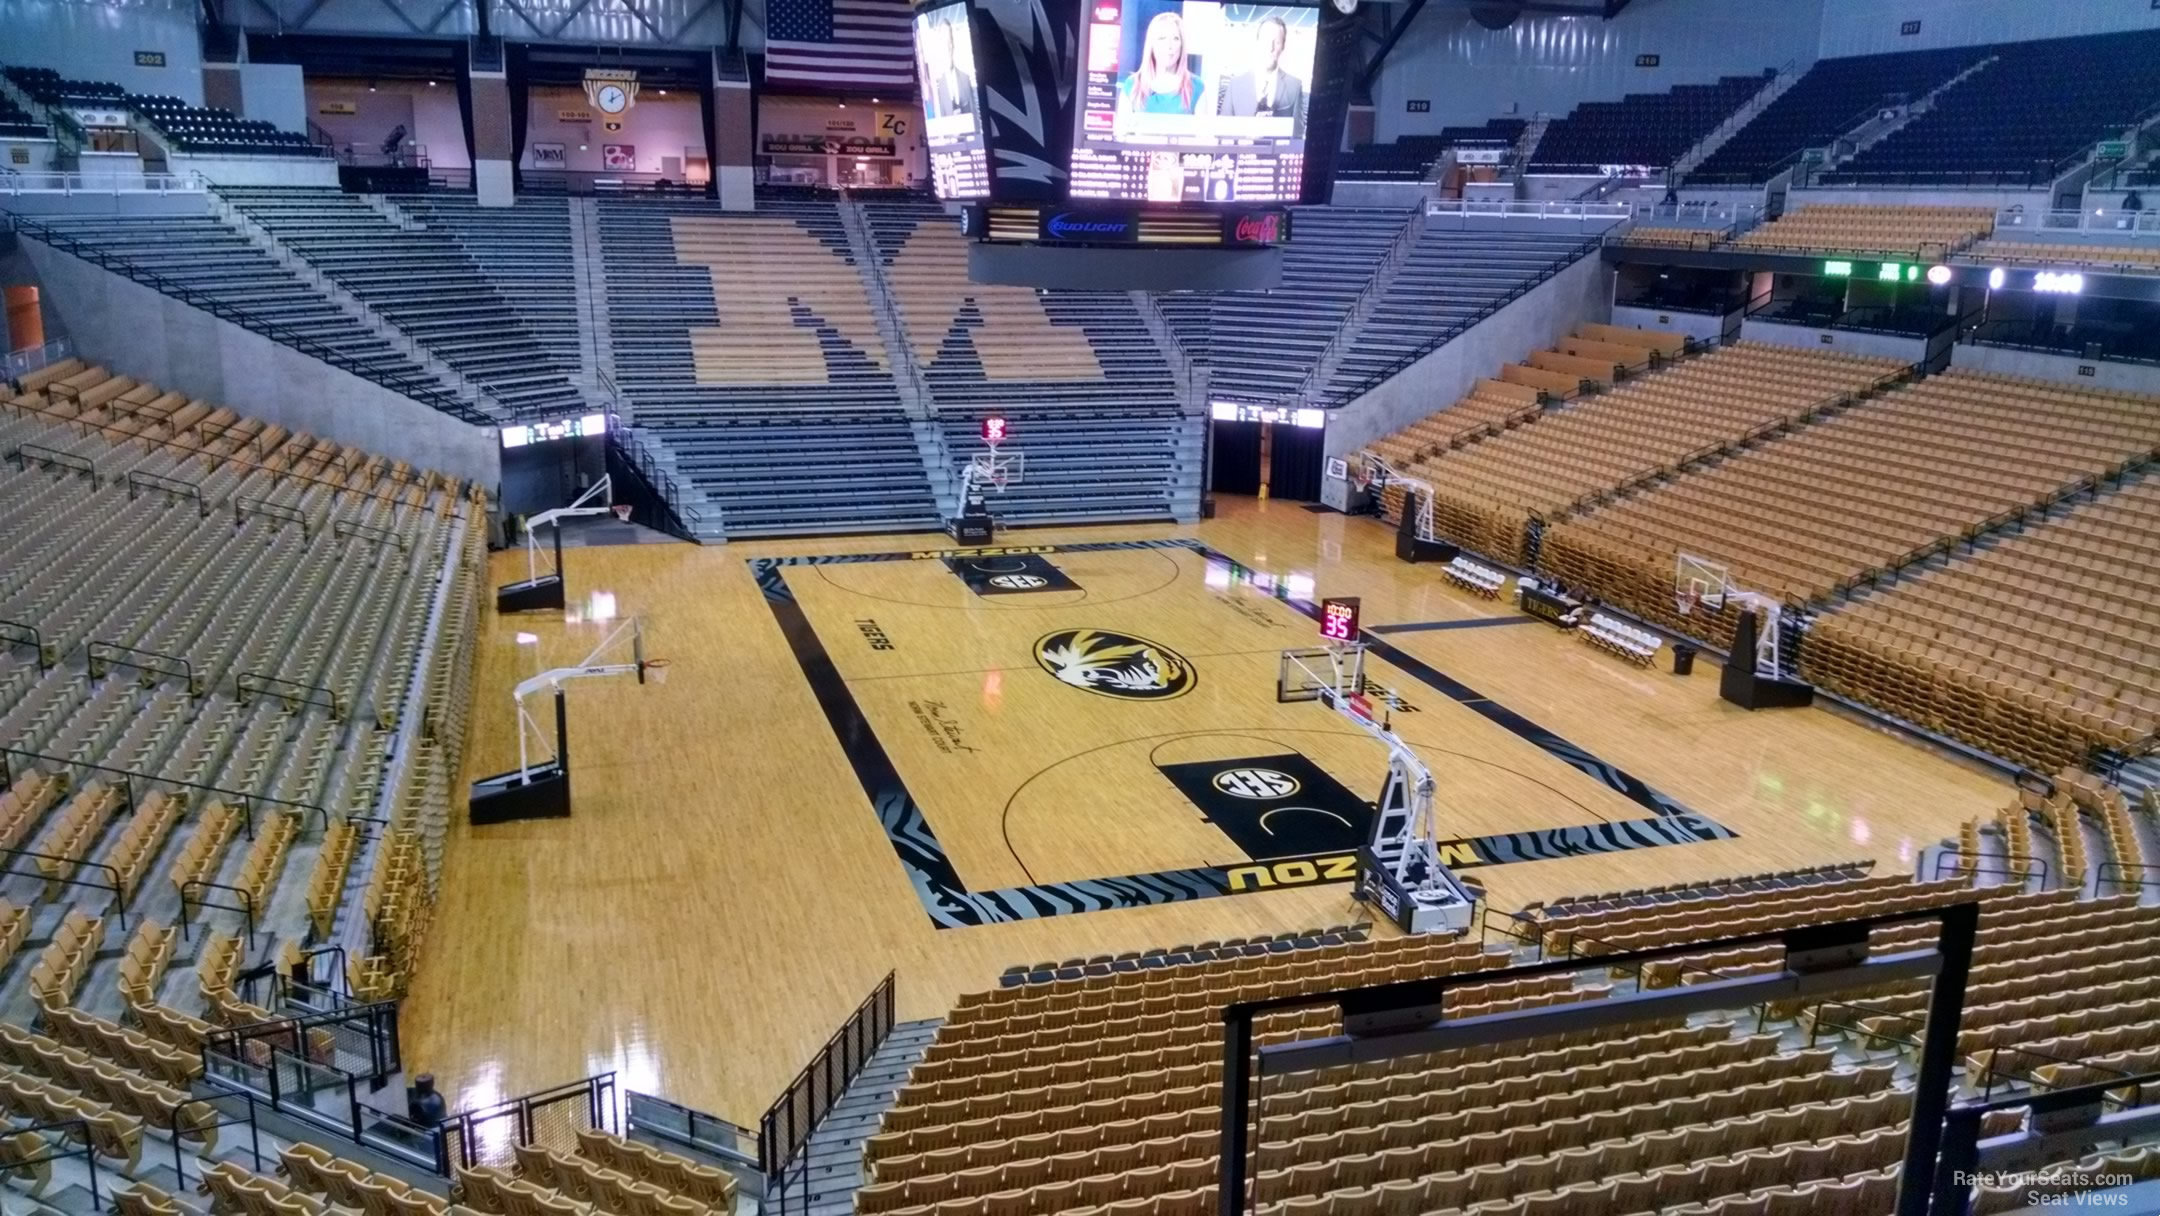 Mizzou Arena Seating Chart With Rows Brokeasshome Com